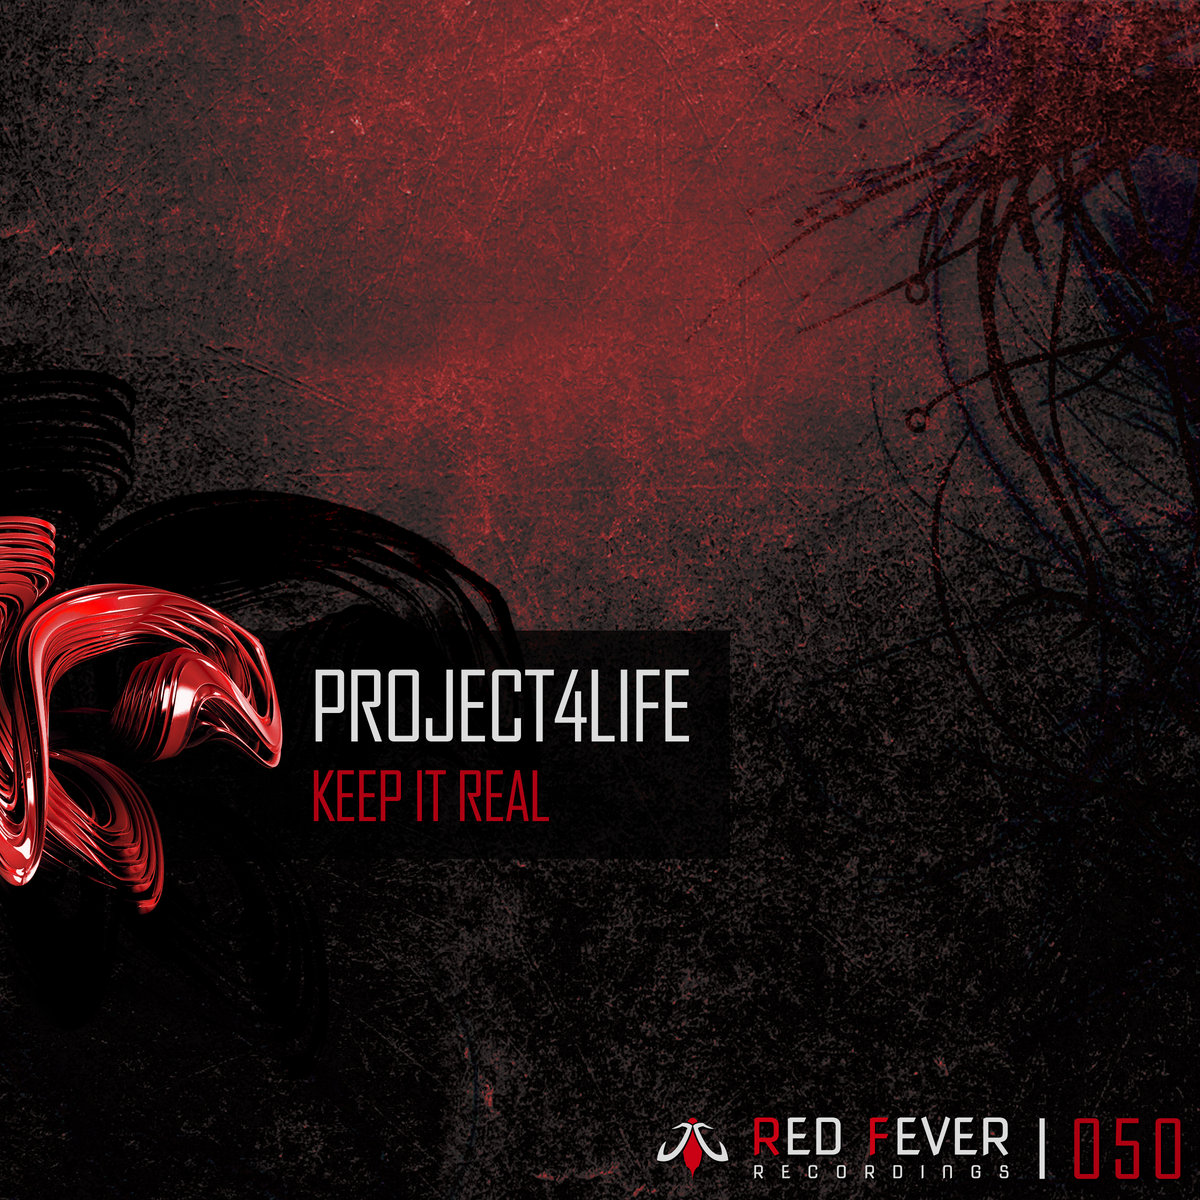 Project4life - Keep It Real (artwork)